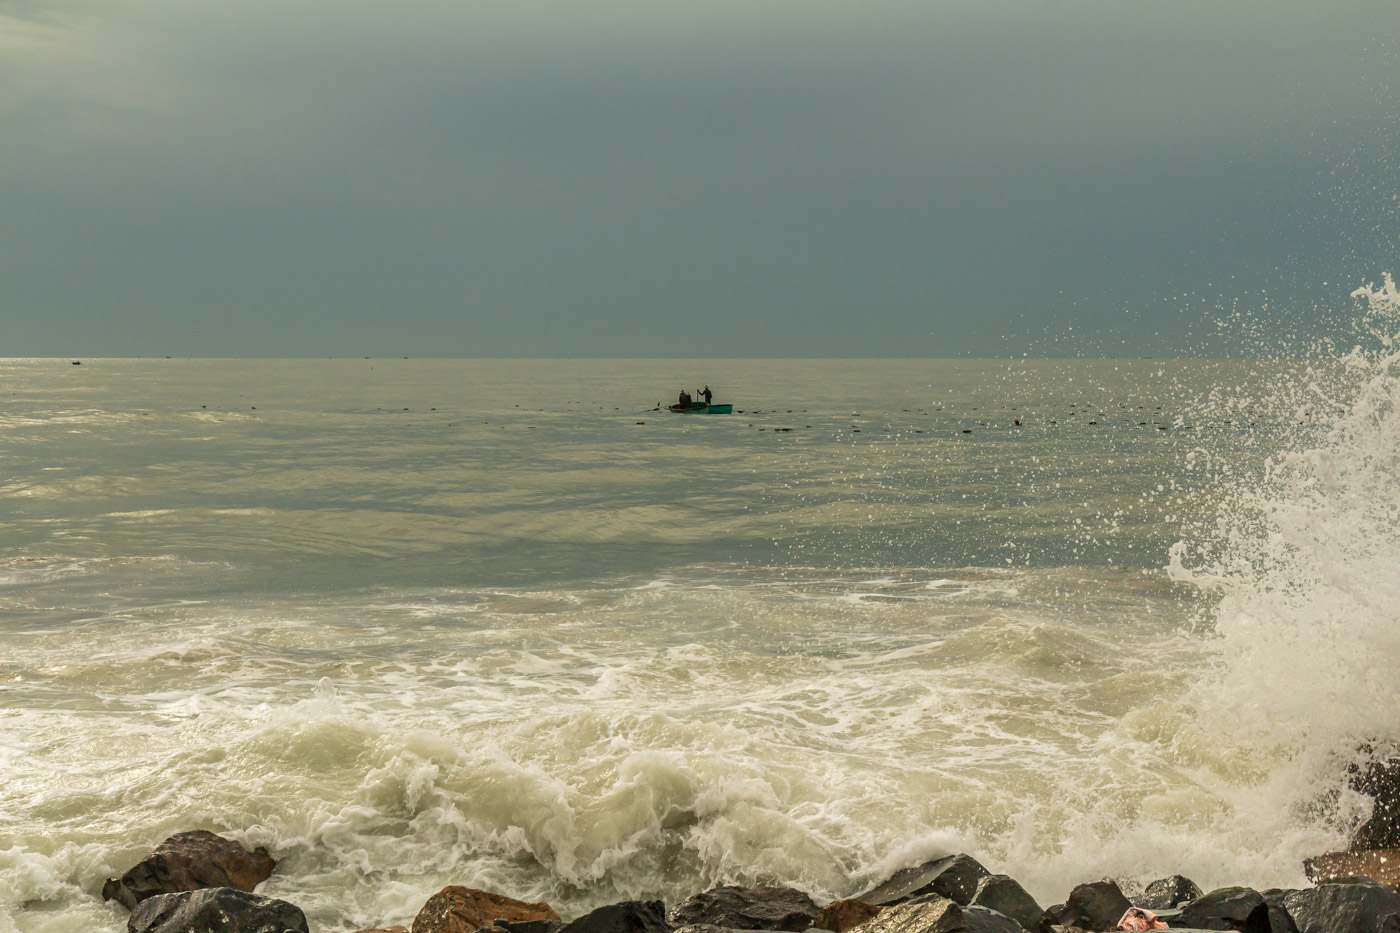 Fishermen and crashing waves.